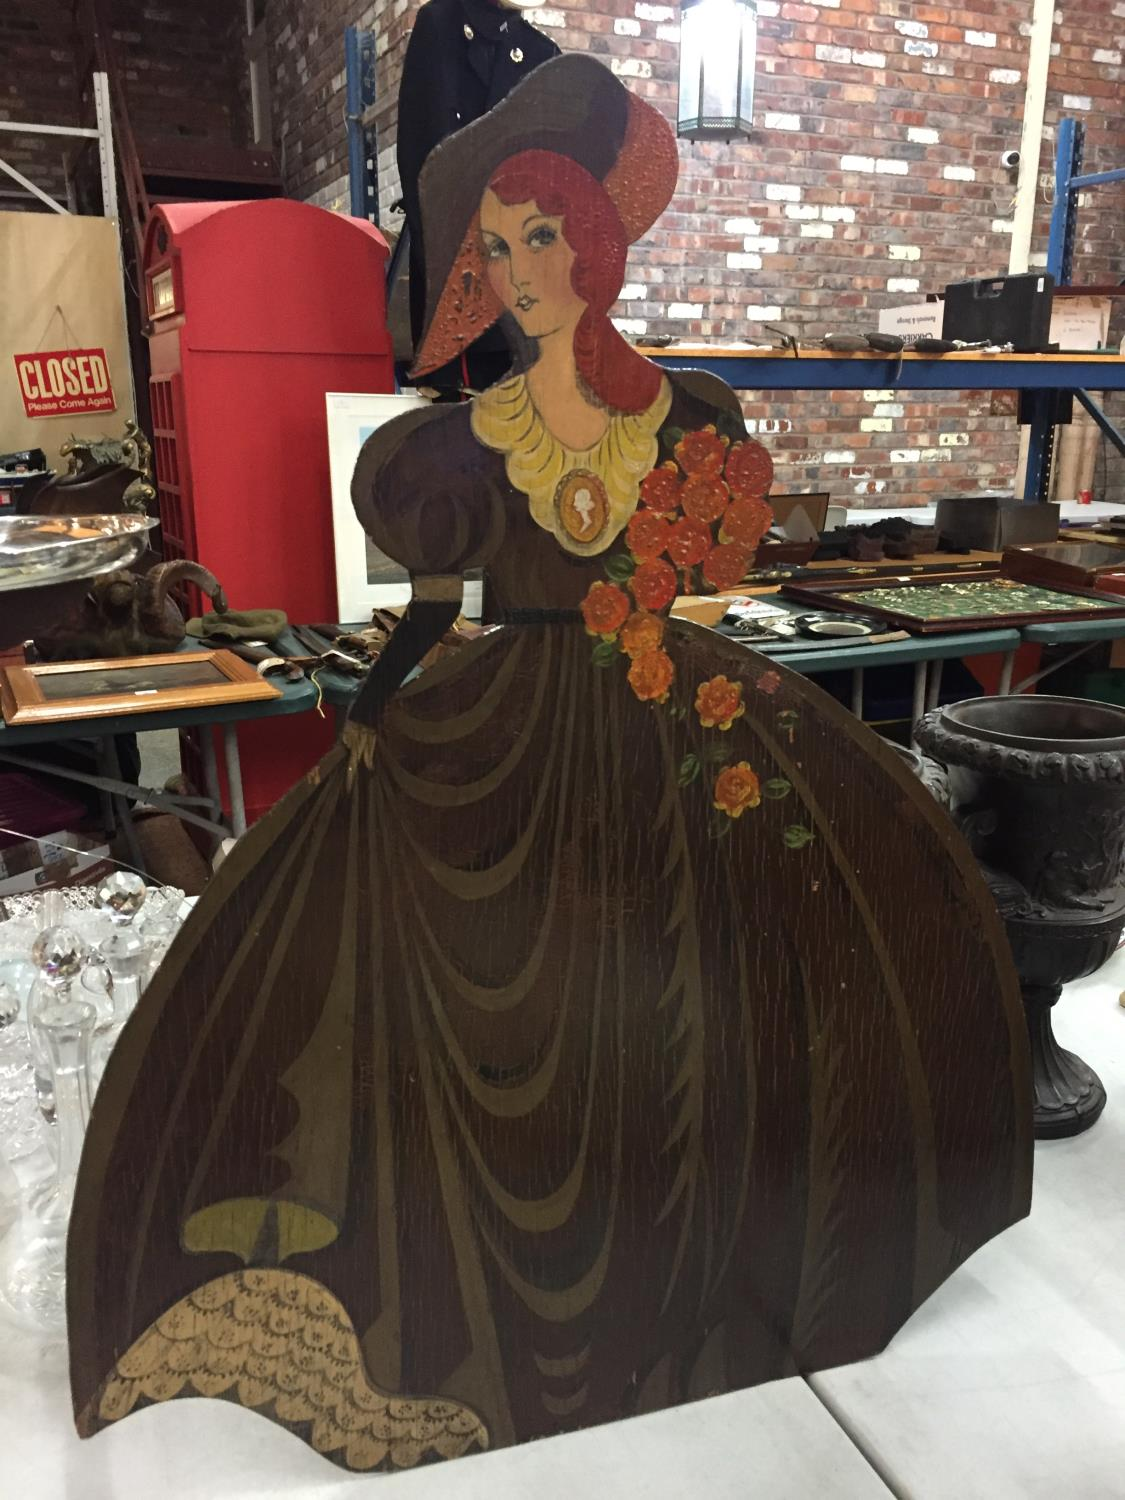 A PAINTED WOOD DUMB WAITER HOLDING A TRAY AND A SIMILAR LADY WITH FLOWERS HEIGHT 76CM - Image 4 of 6